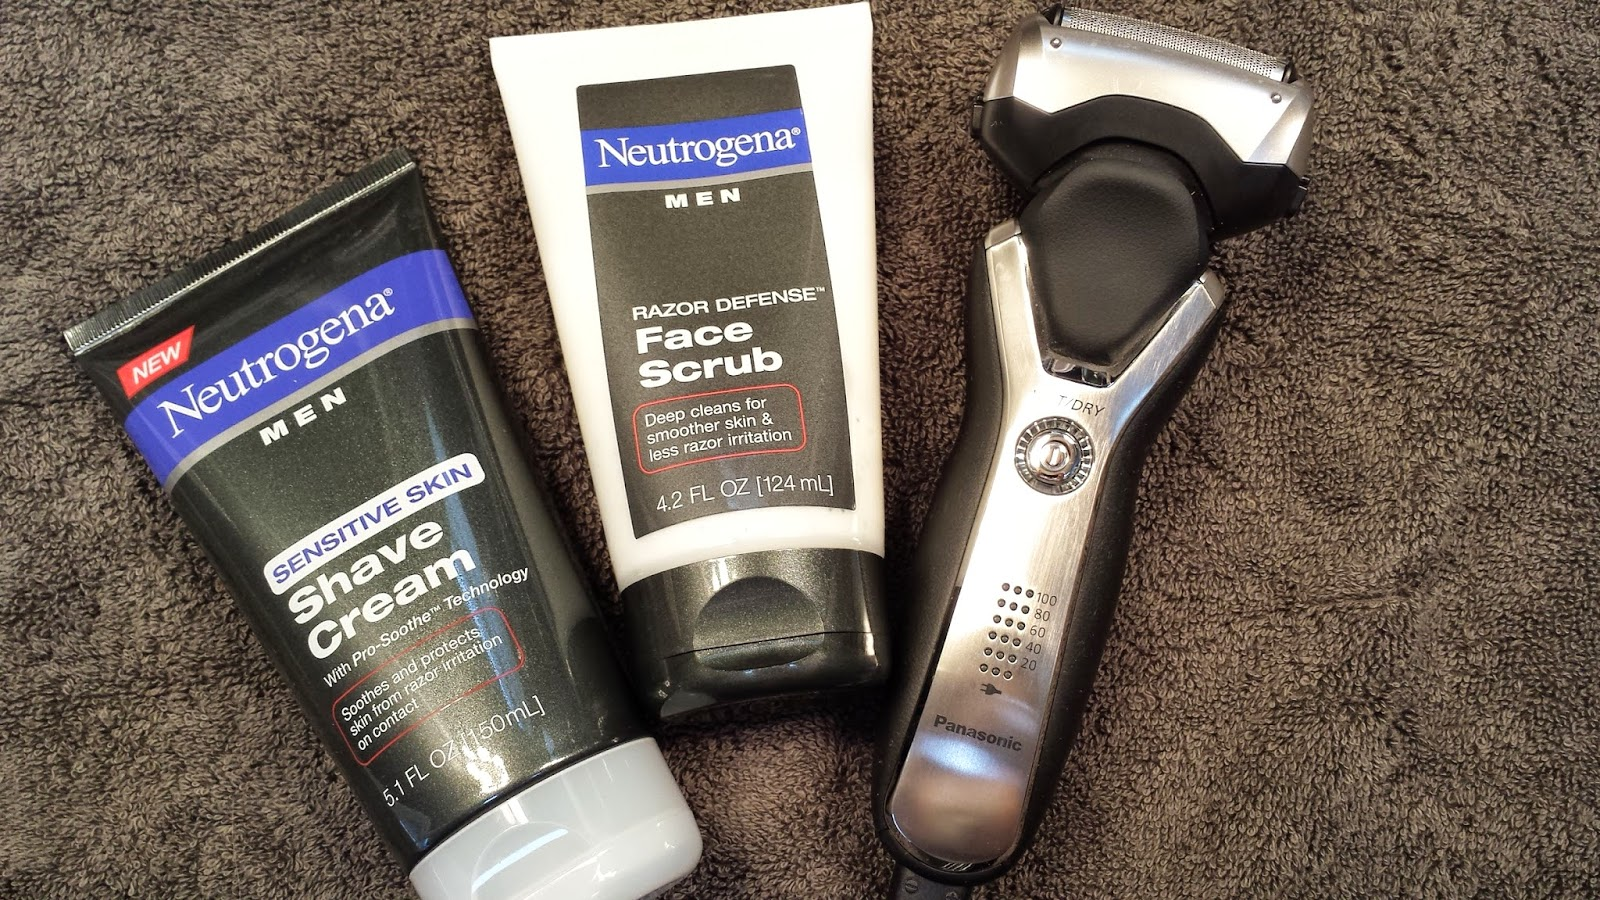 Neutrogena Men's Line & Panasonic wet/dry razor